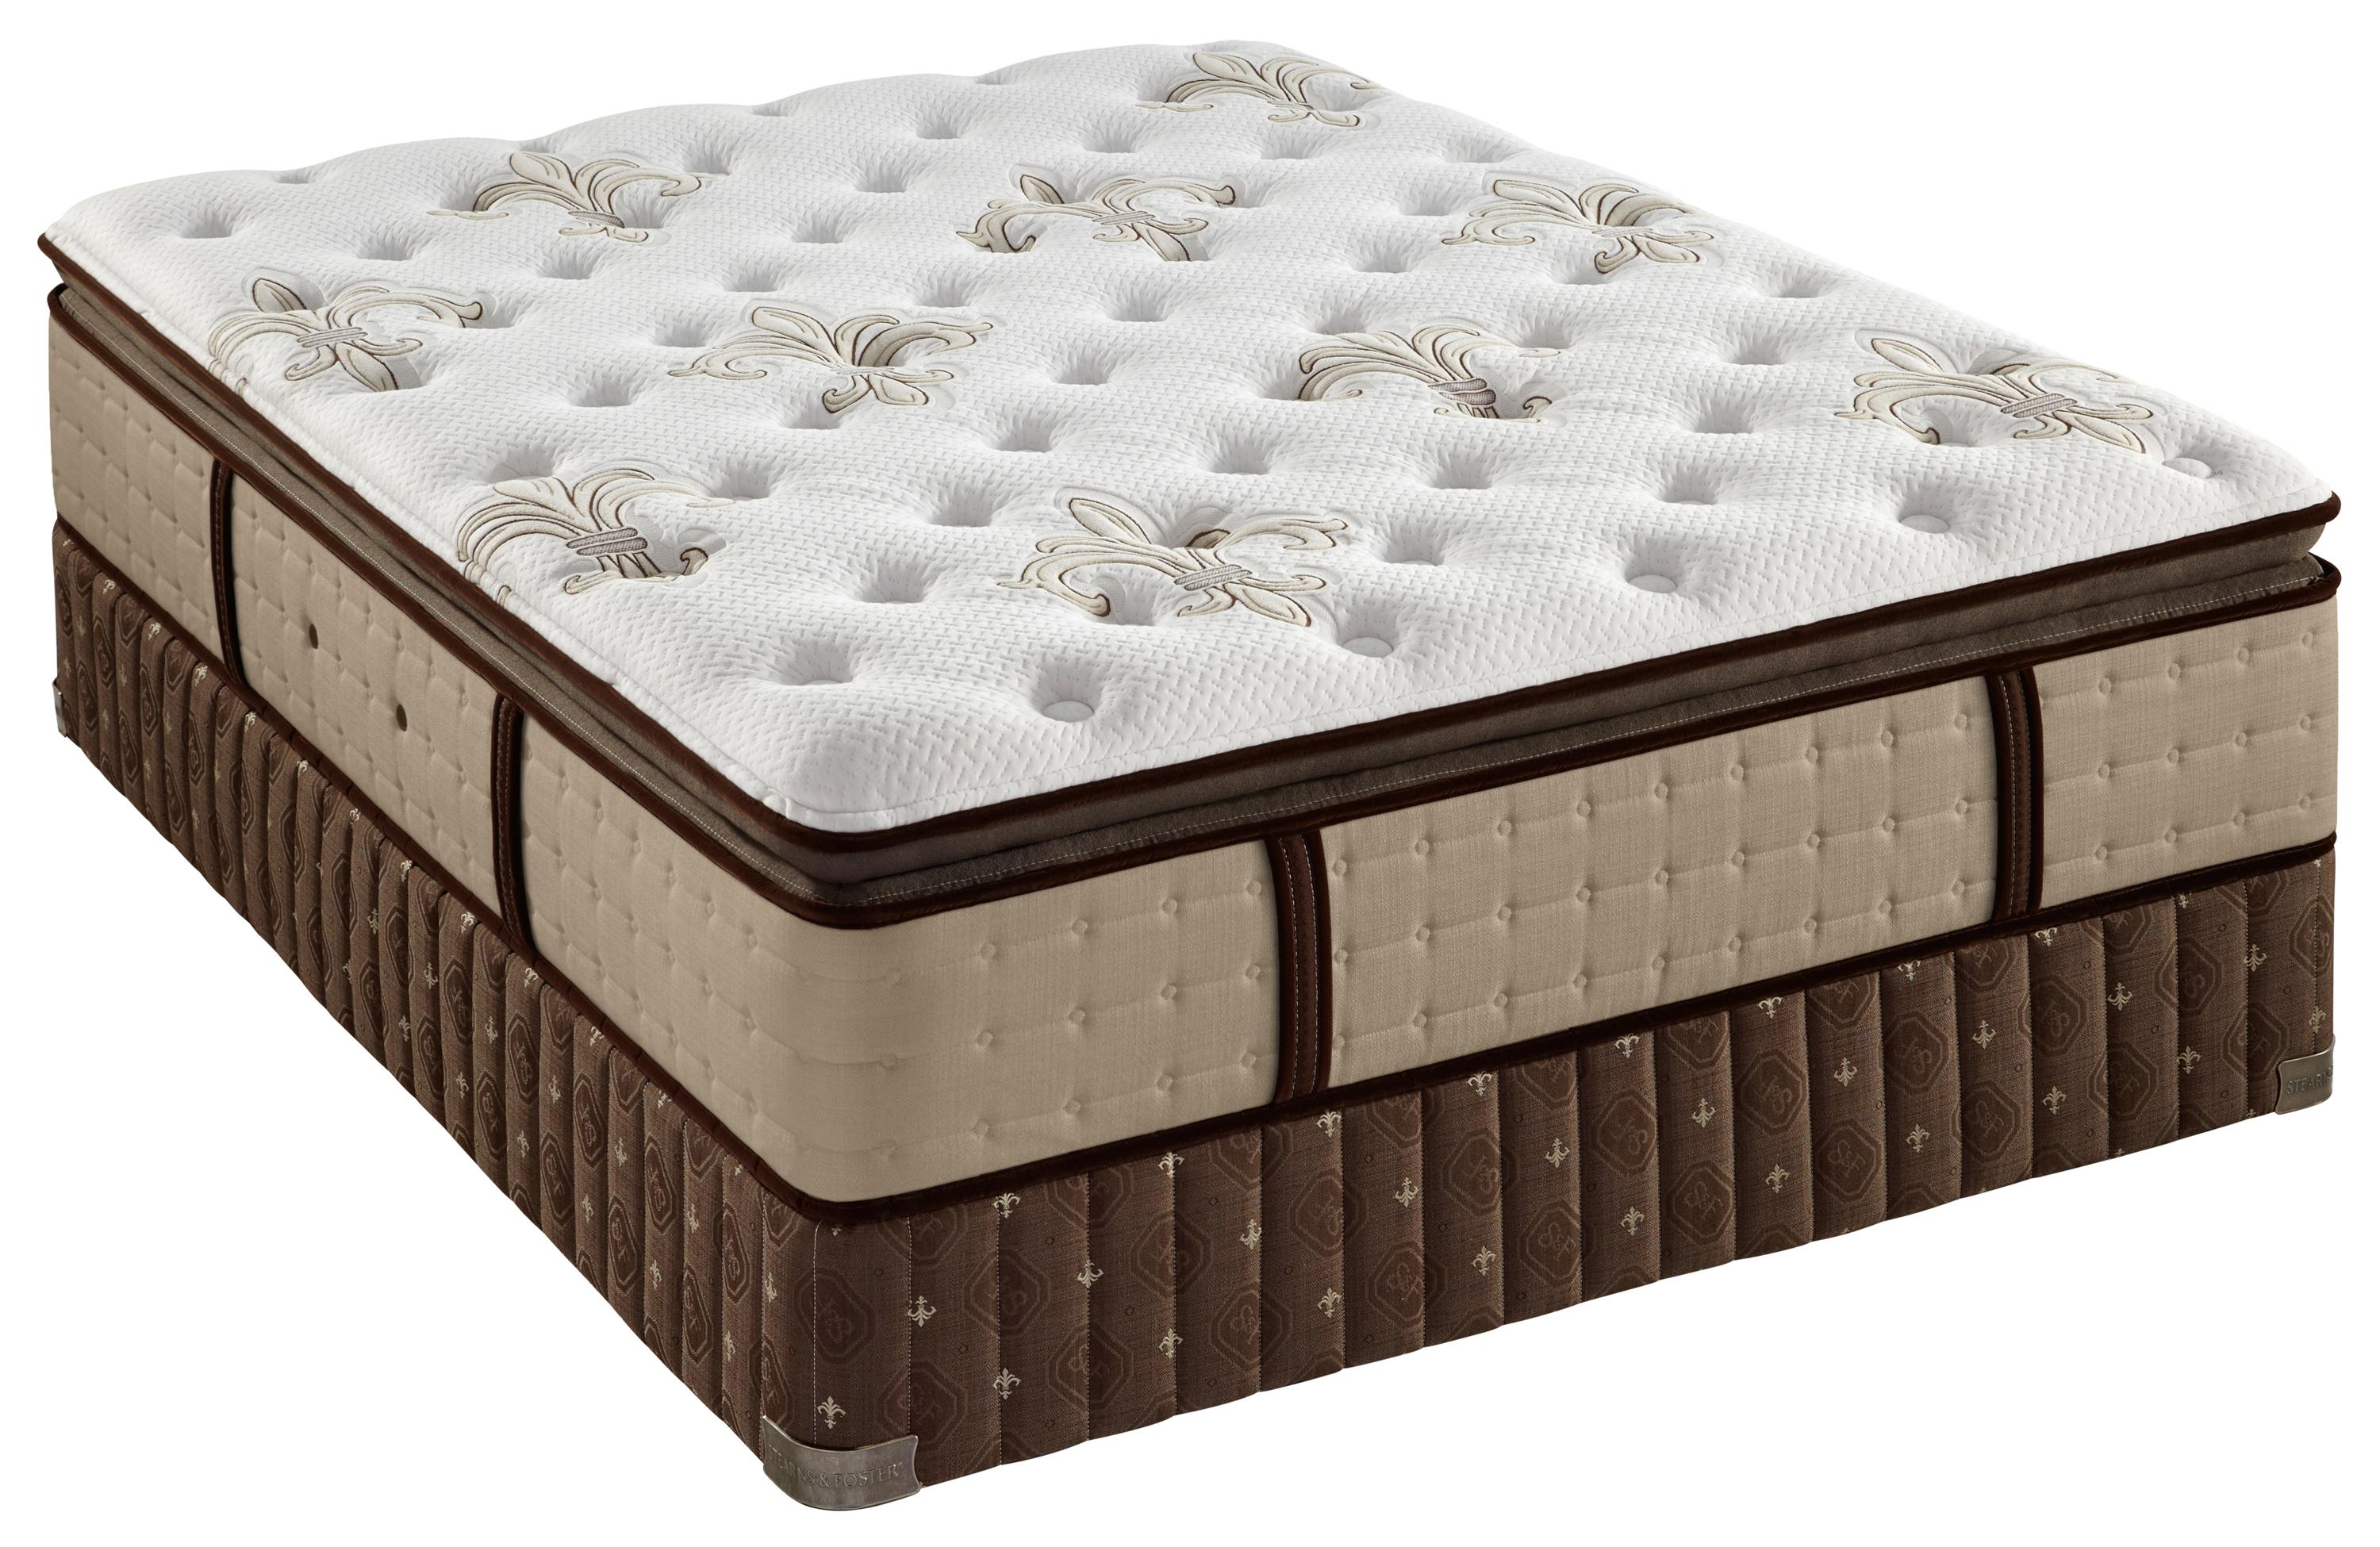 Stearns & Foster Friendfield King Plush Euro Pillow Top Mattress Set - Item Number: PlushEPT-K+2x608615TXLK